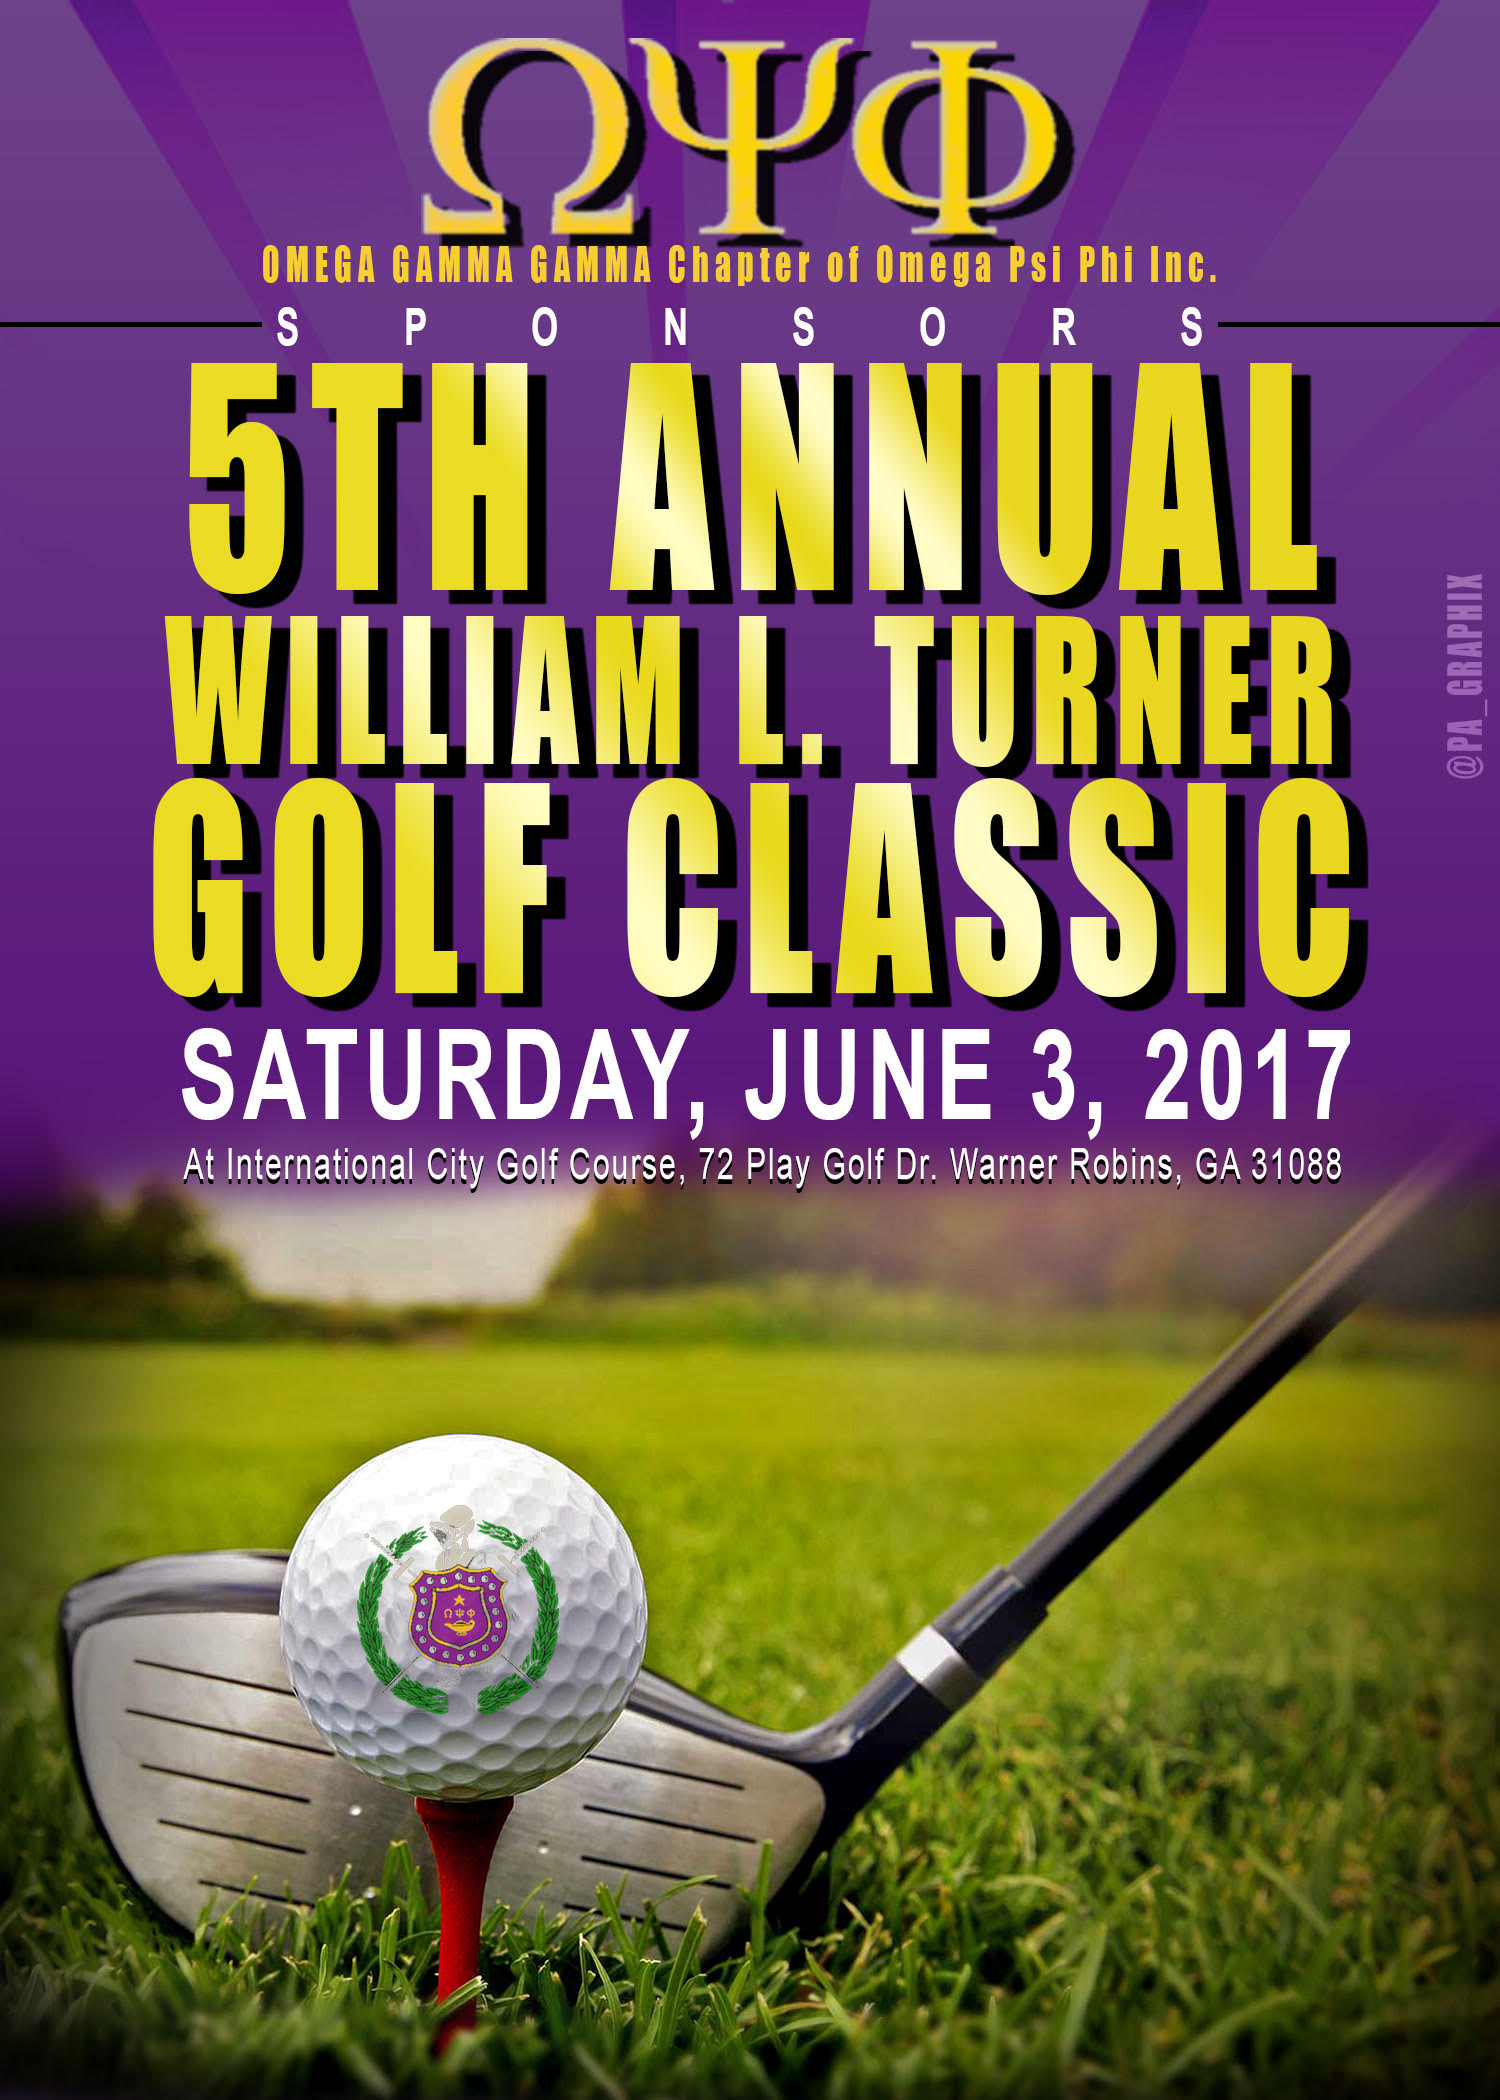 Golf save the date 2017